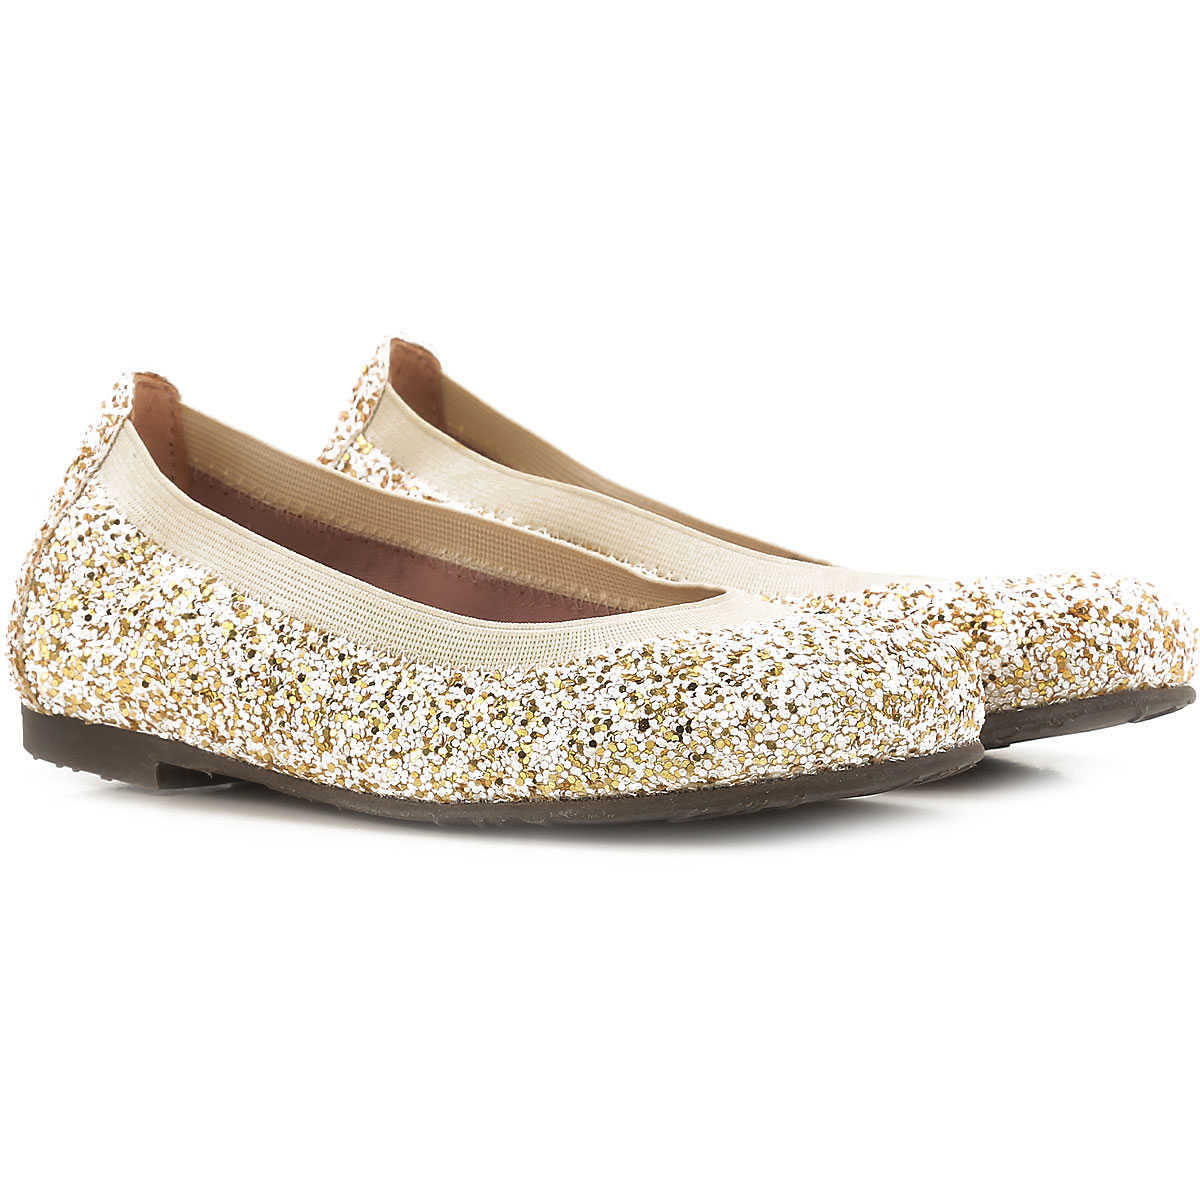 Pretty Ballerinas Kids Shoes for Girls in Outlet Cream Canada - GOOFASH - Womens BALLERINAS